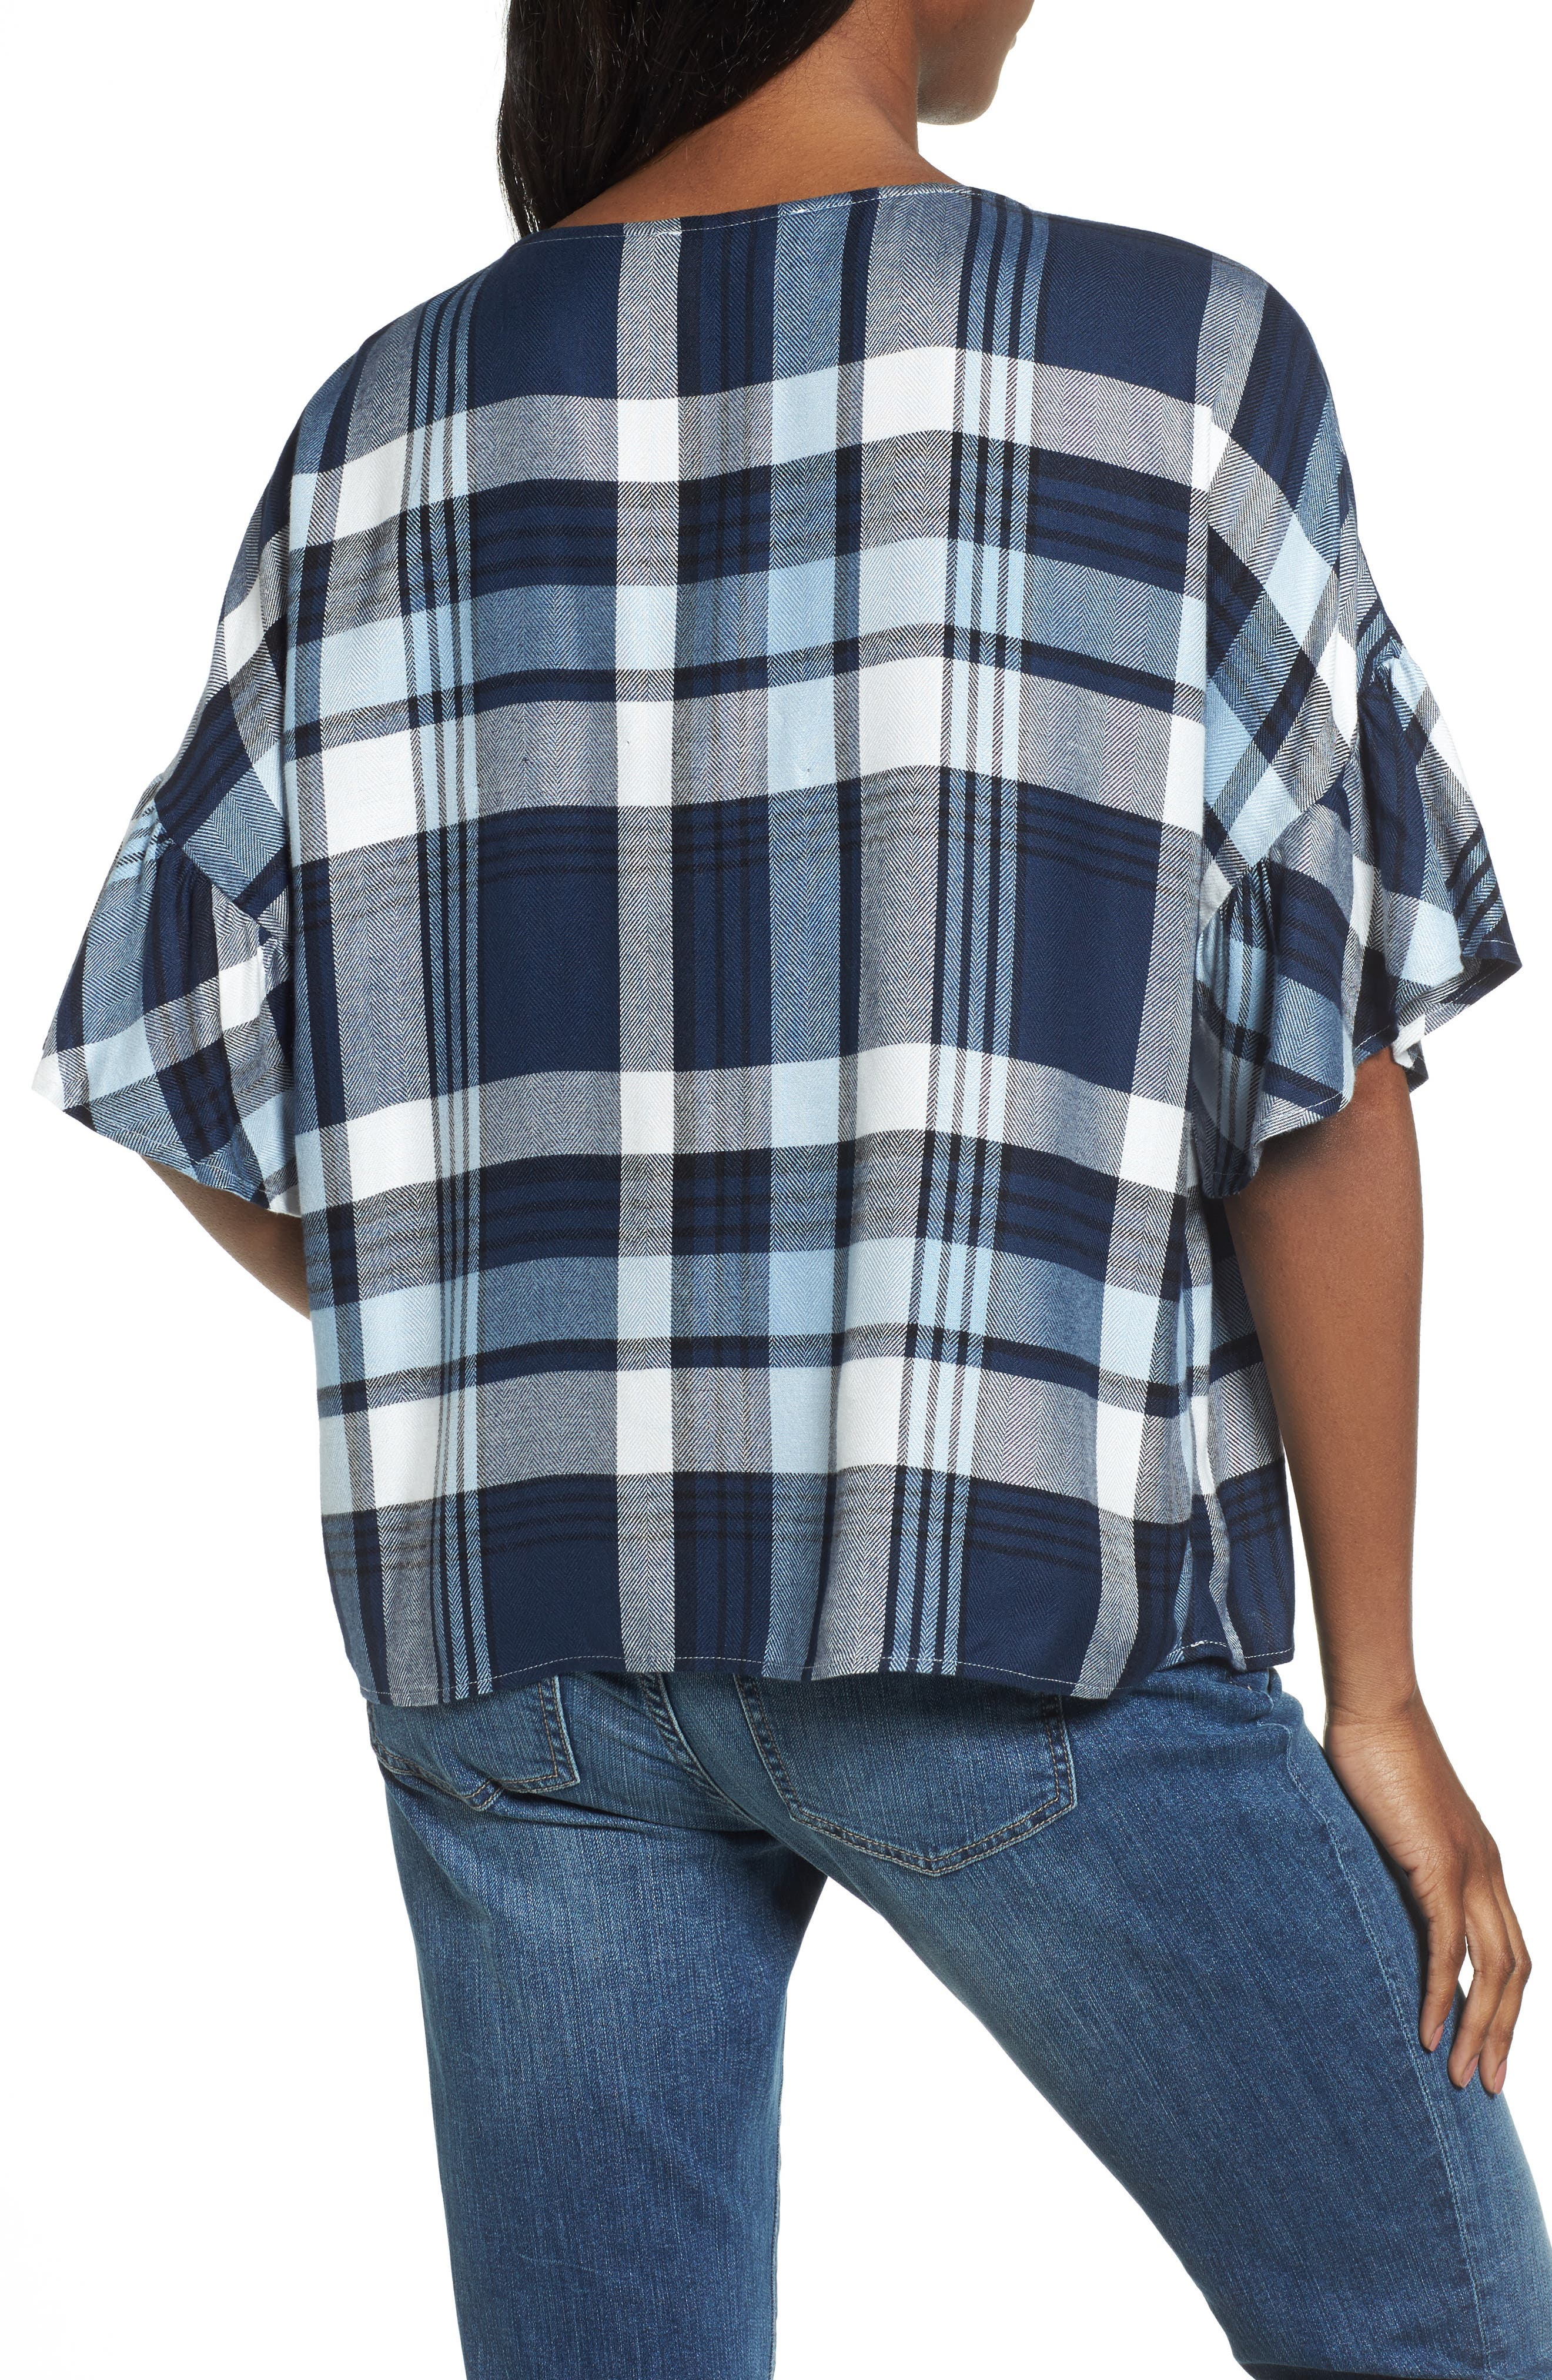 Alternate Image 2  - Two by Vince Camuto Ruffle Sleeve Plaid Top (Regular & Petite)